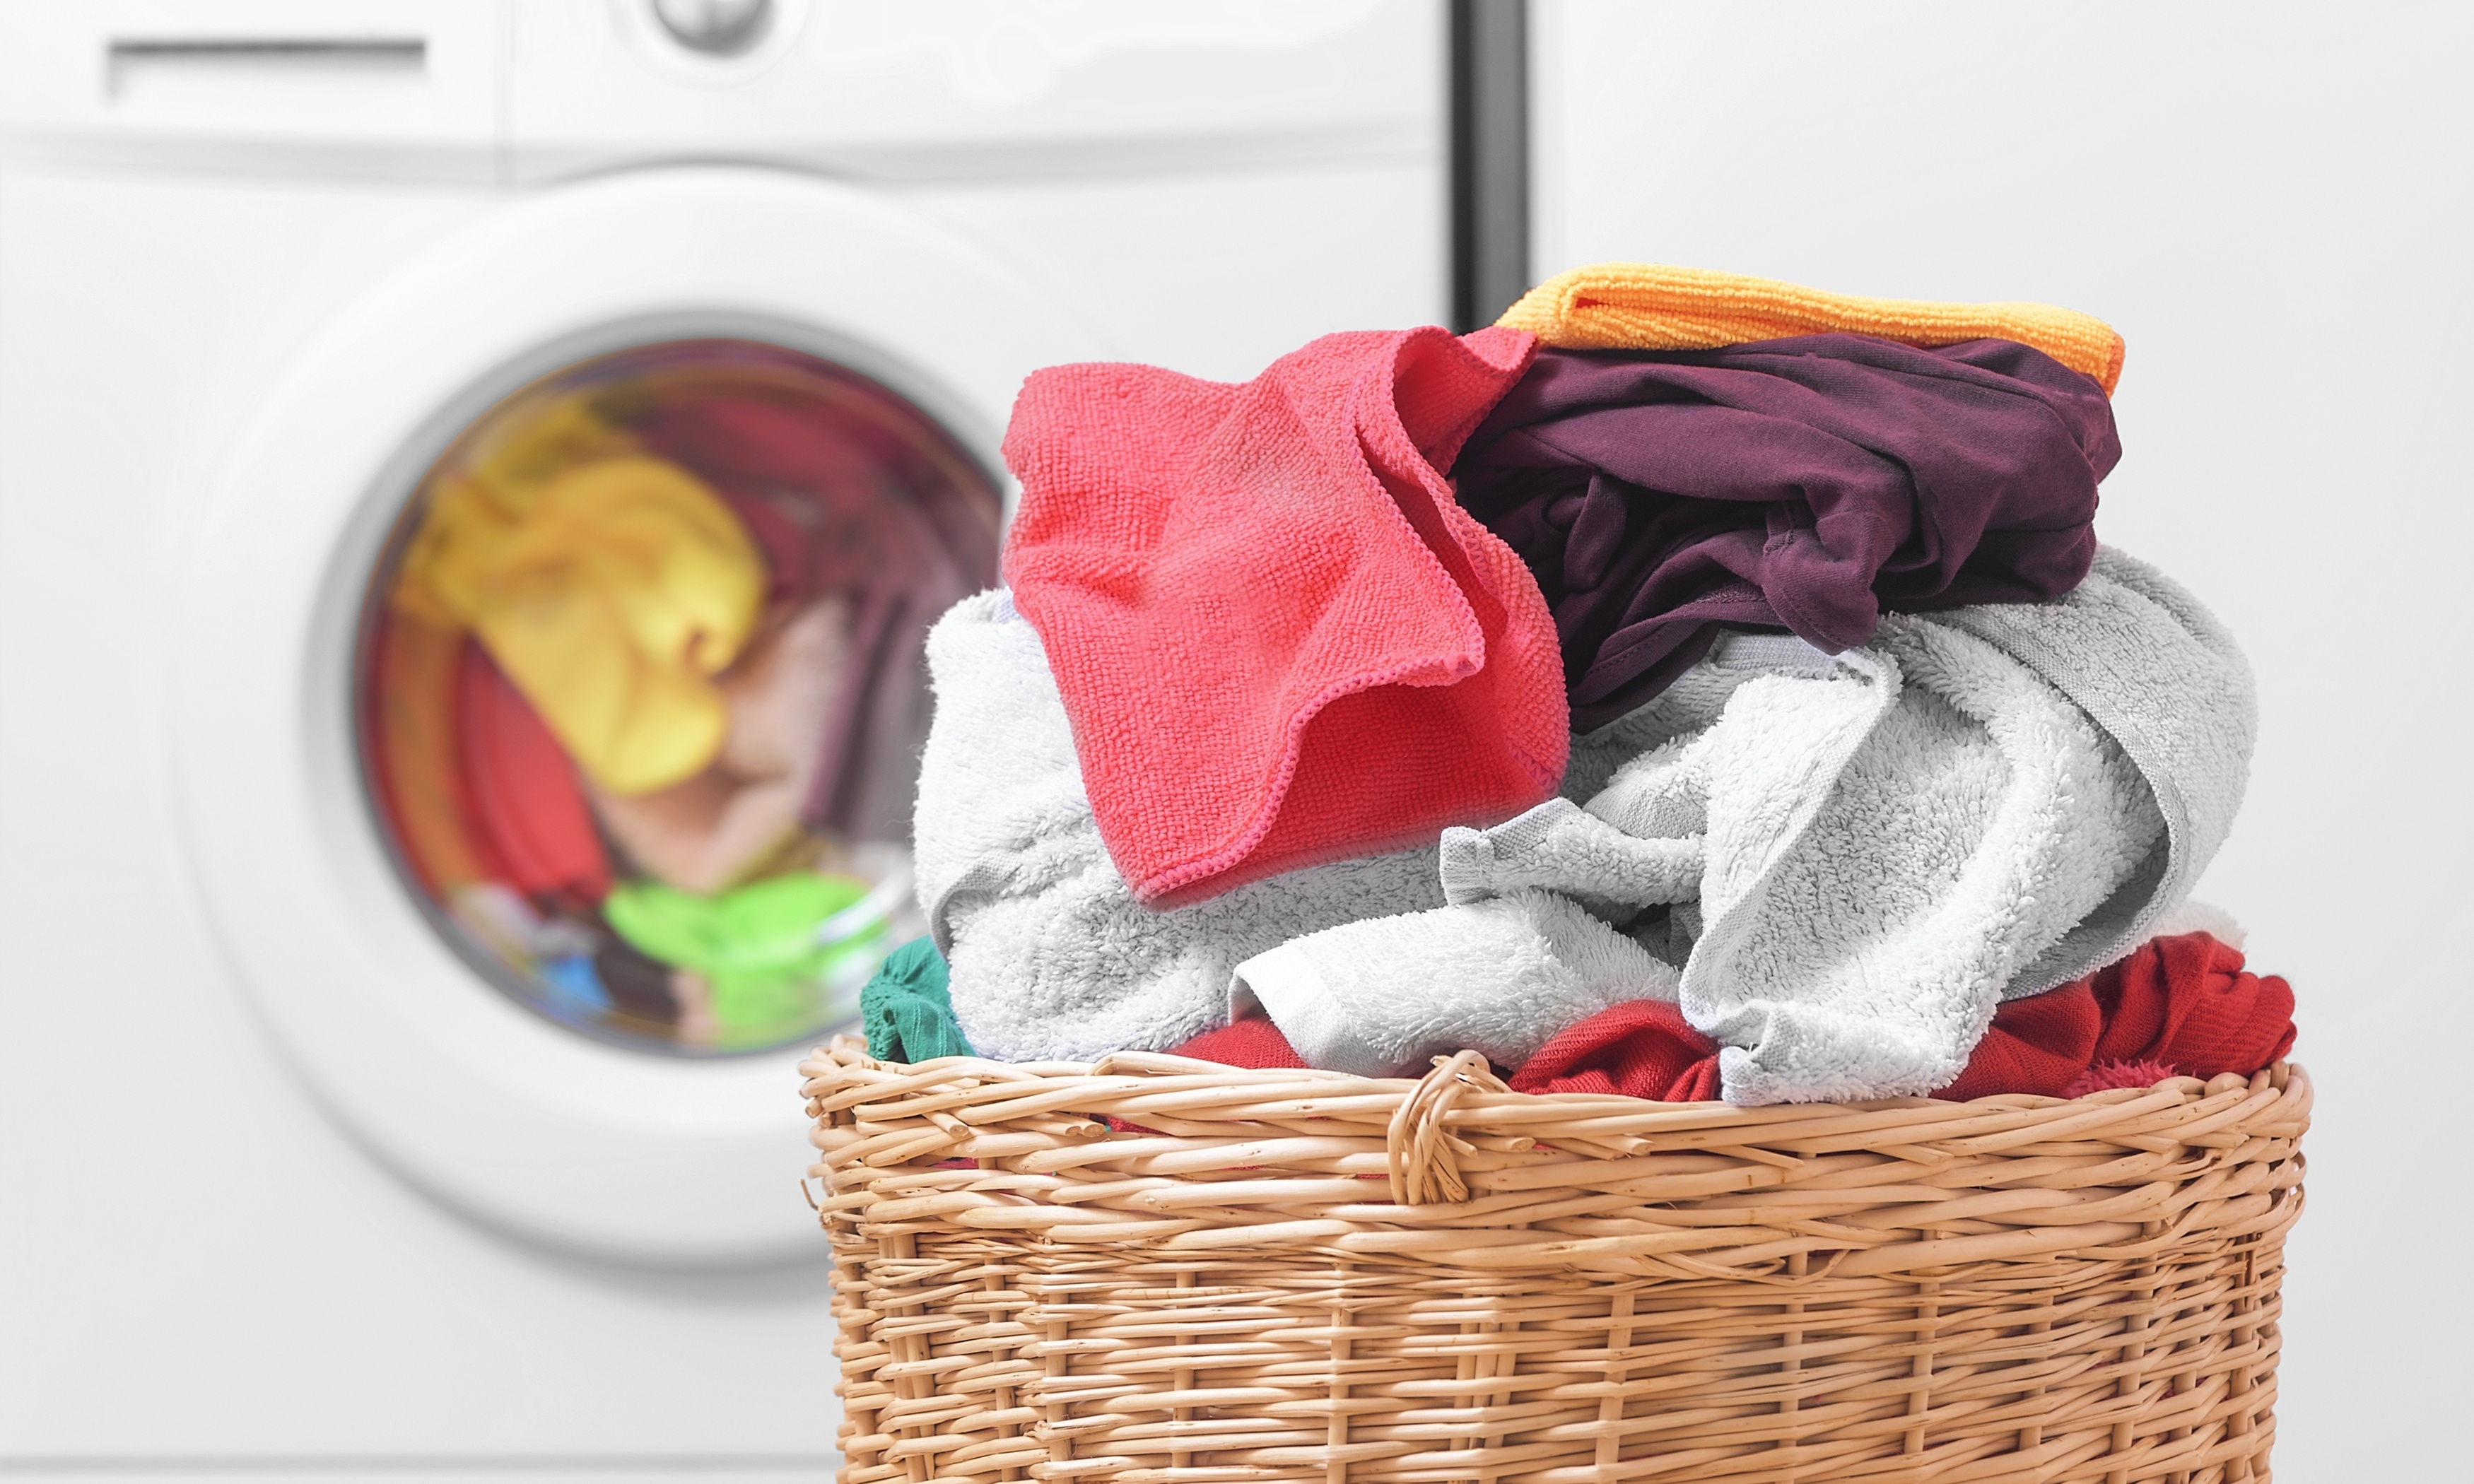 Basket full of laundry with washing machine in the background